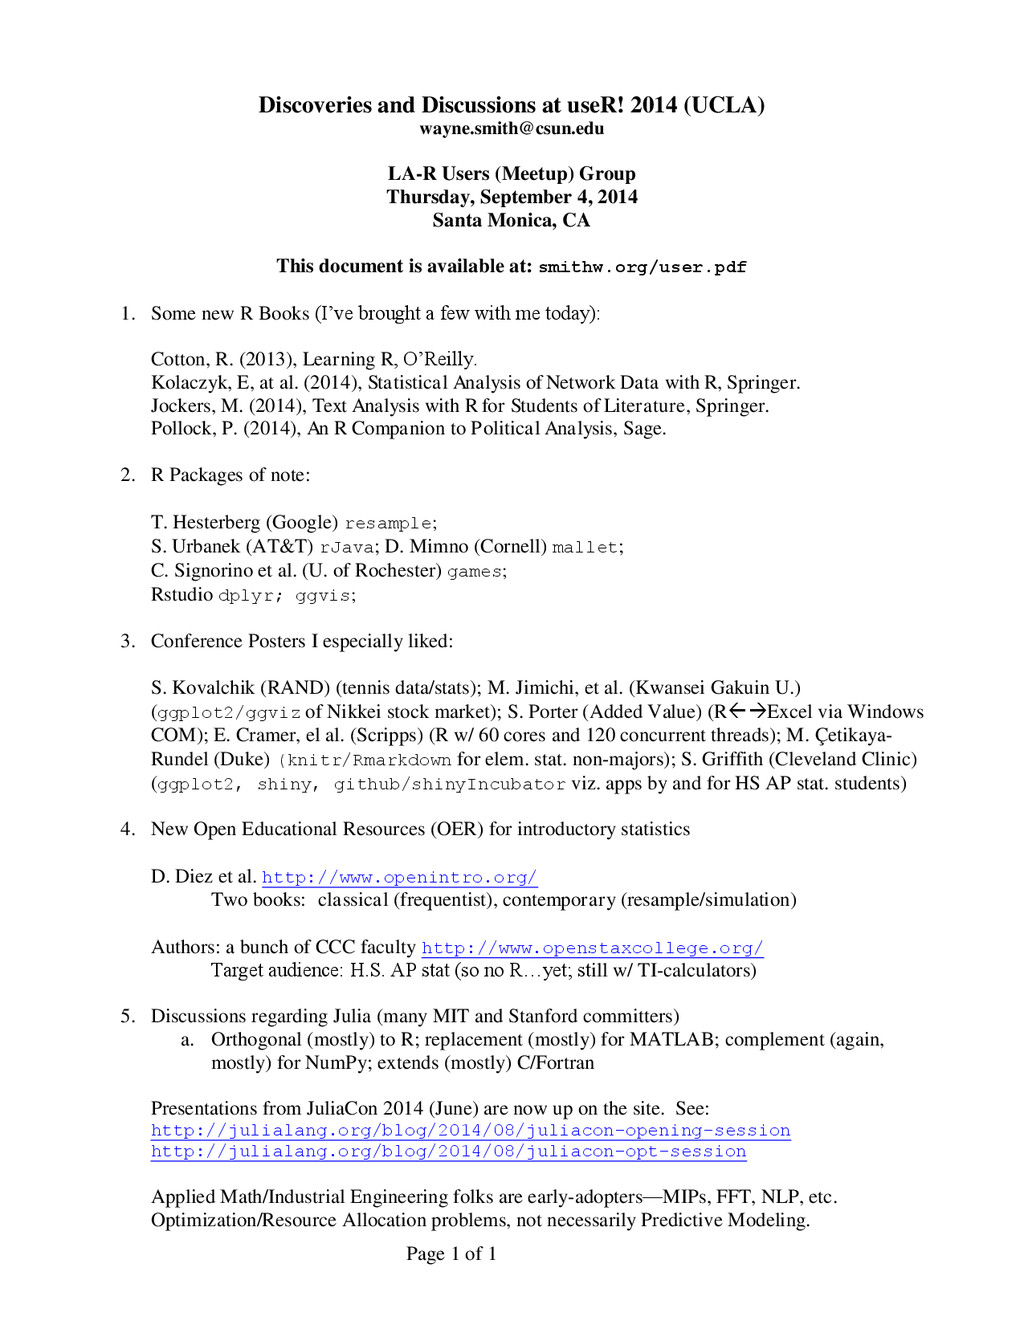 Page 1 of 1 Discoveries and Discussions at useR...